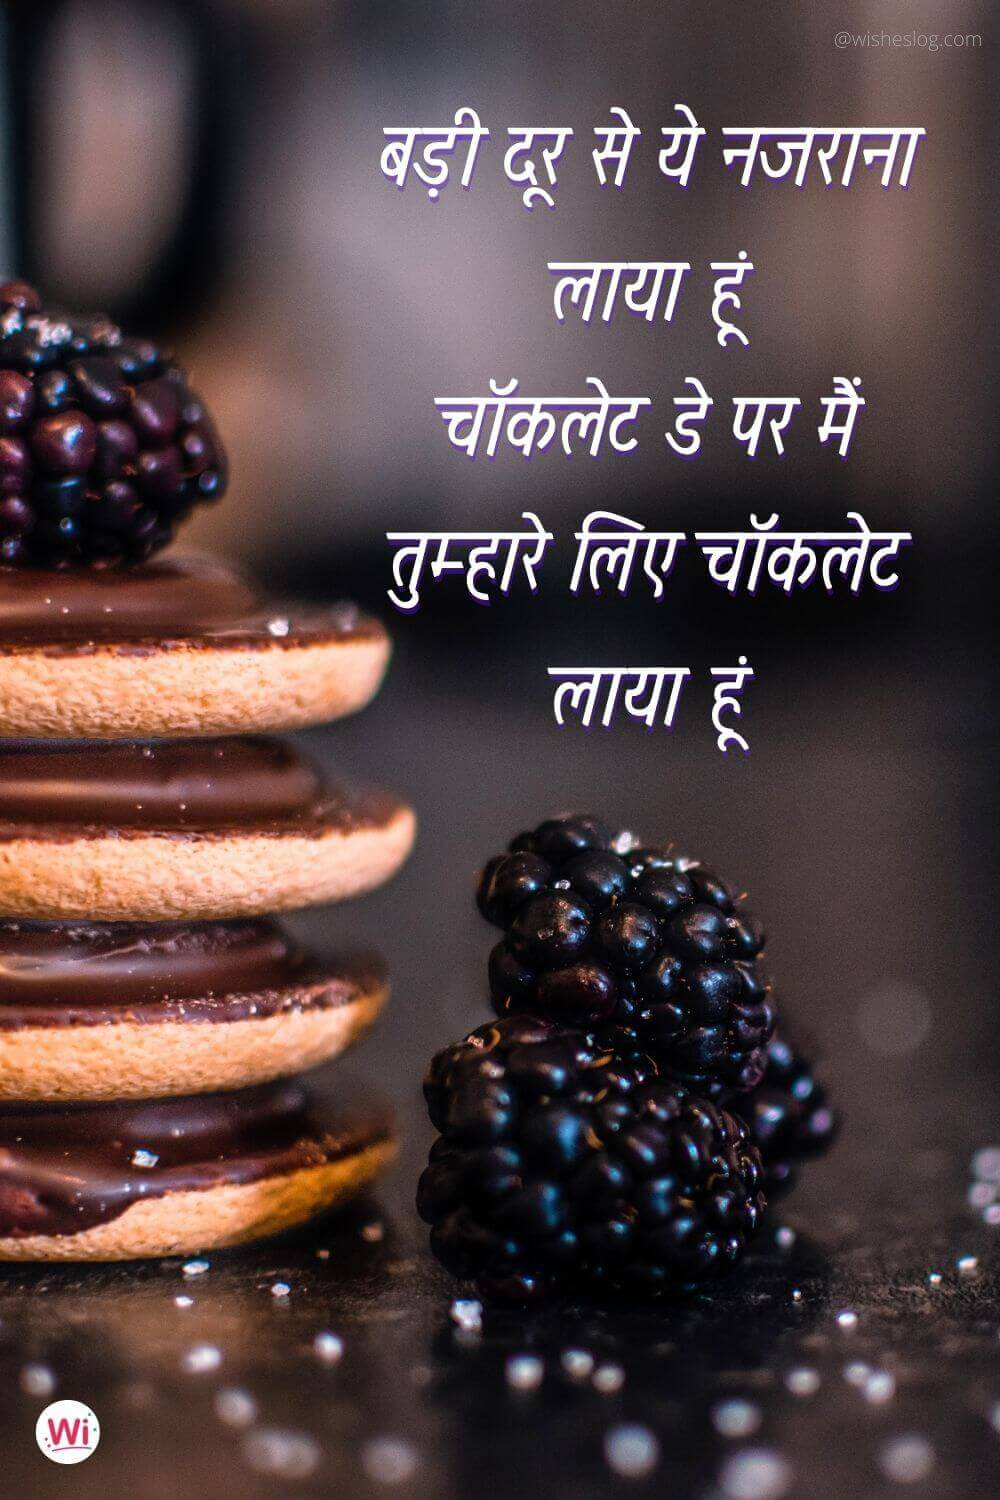 chocolate day quotes in hindi for girlfriend